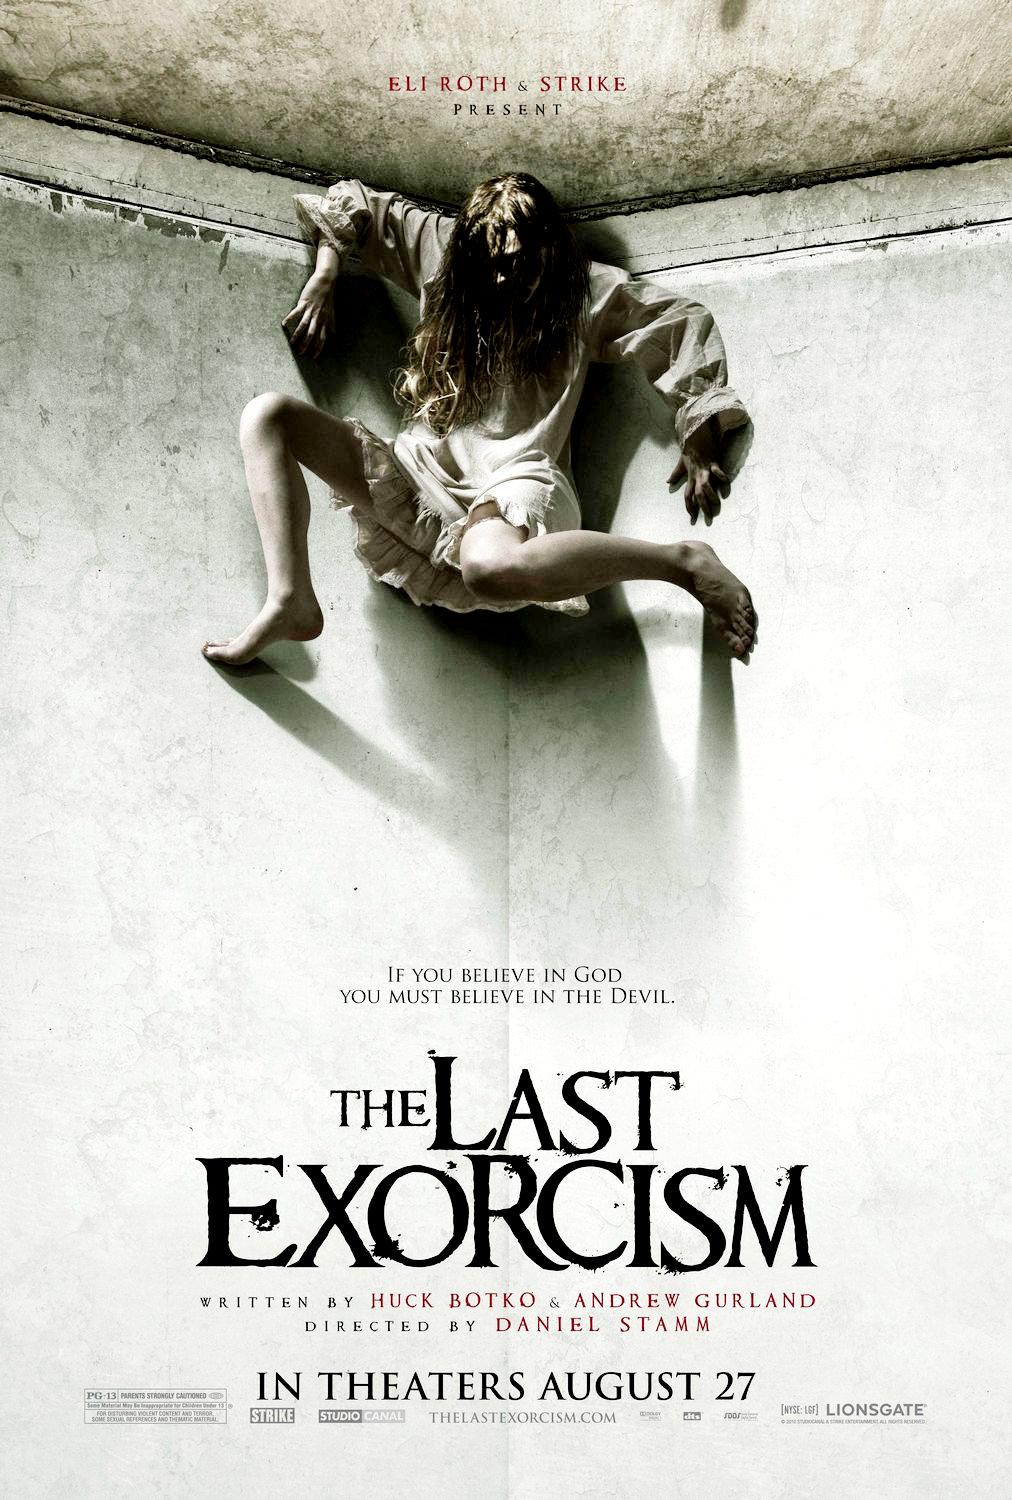 The Last Exorcism 2 Dvd Cover Last exorcism